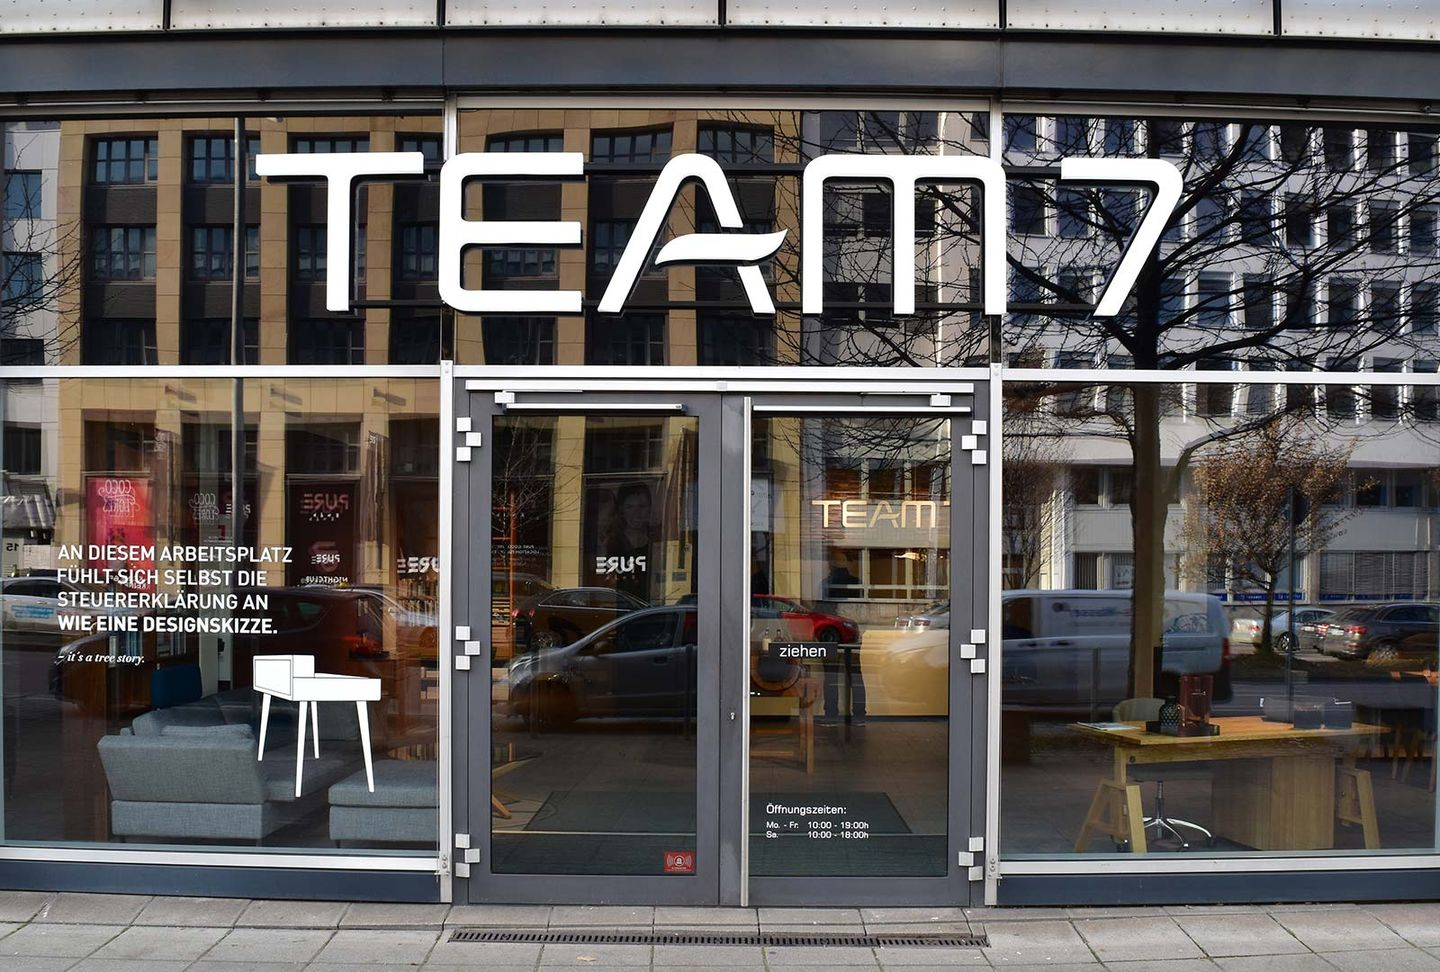 External view of TEAM 7 store in Stuttgart from the front